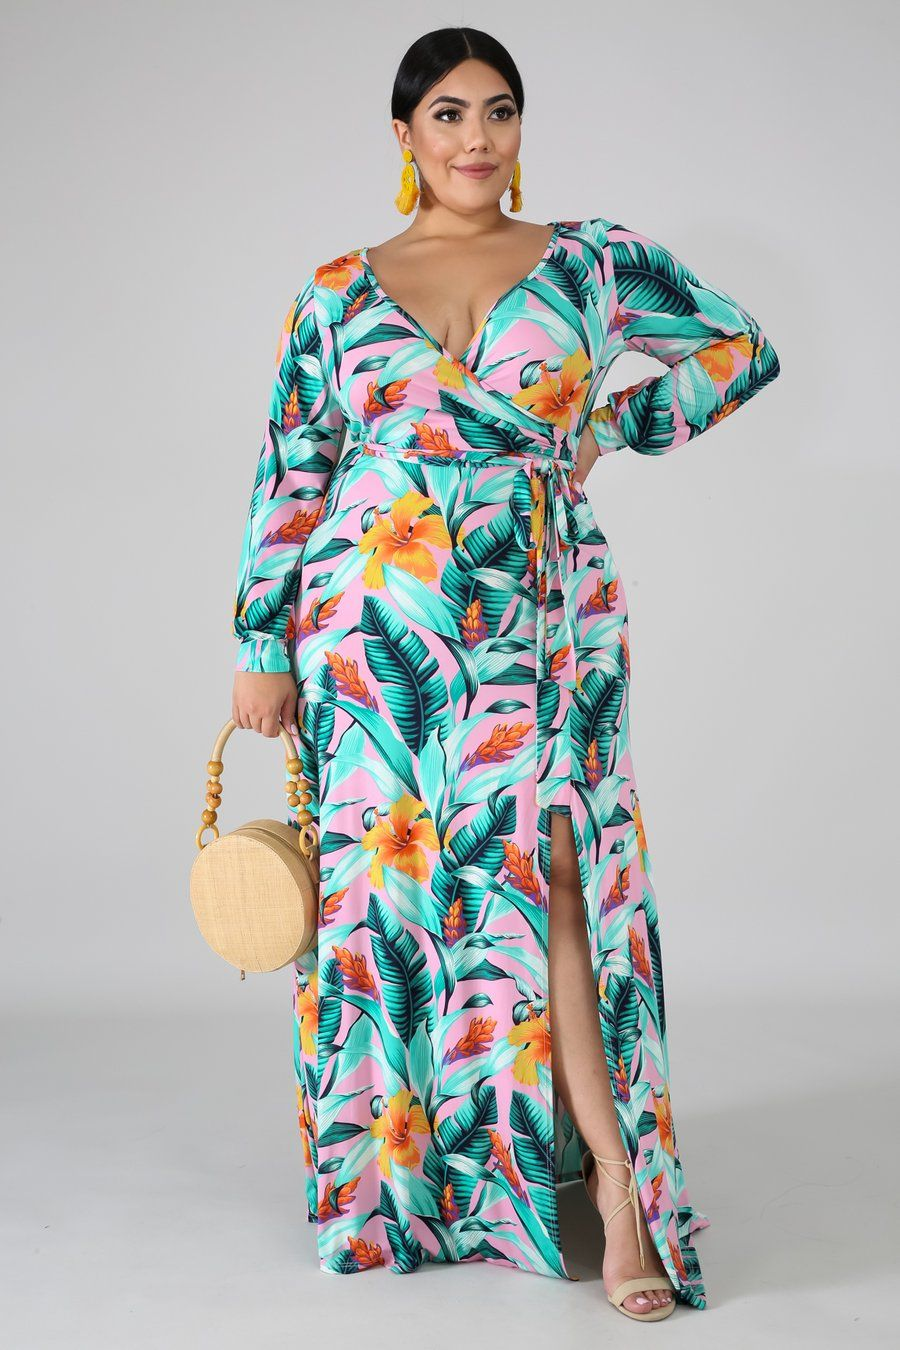 Caribbean Maxi Dress Style Gt1820 Xdescriptionthis Caribbean Dress Features A Stretchy Fabric V Neckline Maxi Dress Tropical Maxi Dress Cheap Maxi Dresses [ 1350 x 900 Pixel ]